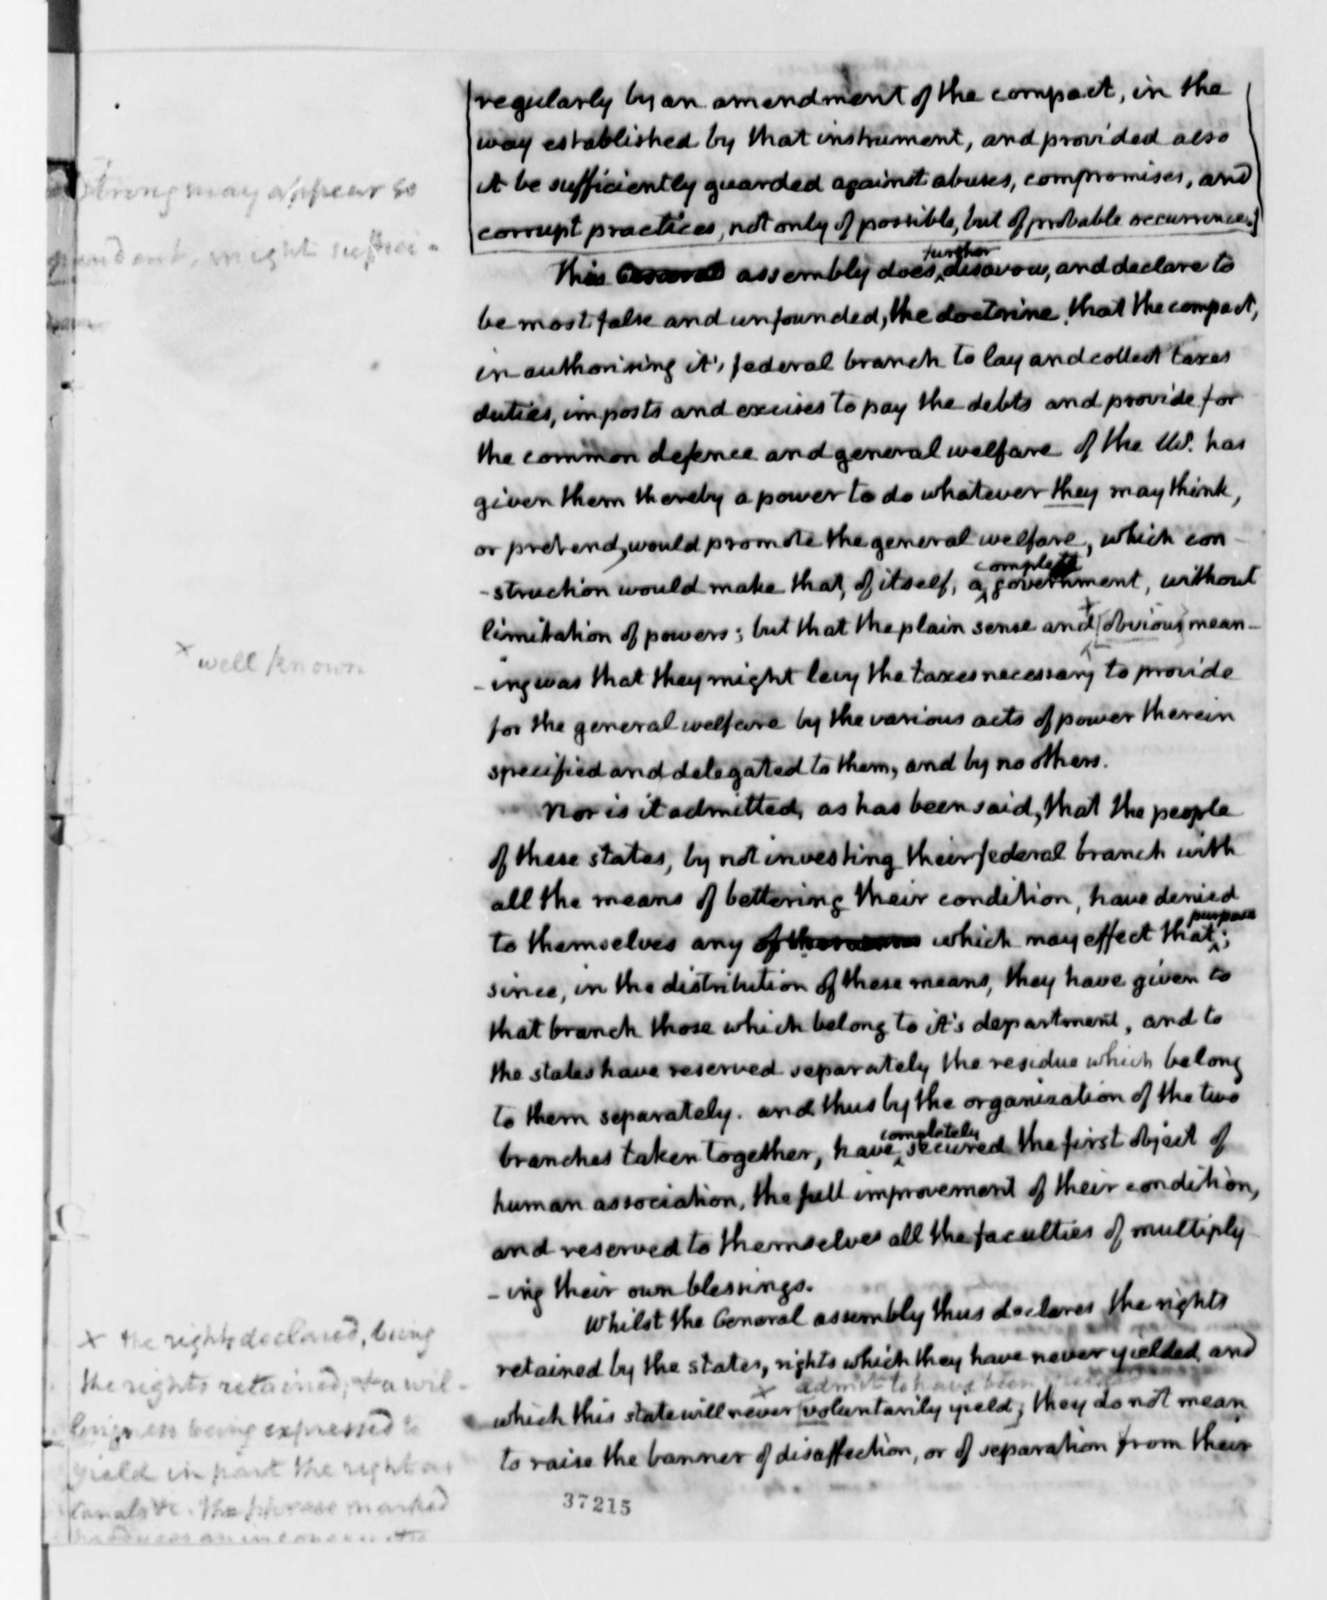 Virginia General Assembly, 1825, Declaration and Protest of U. S. Constitution, in Thomas Jefferson's Hand